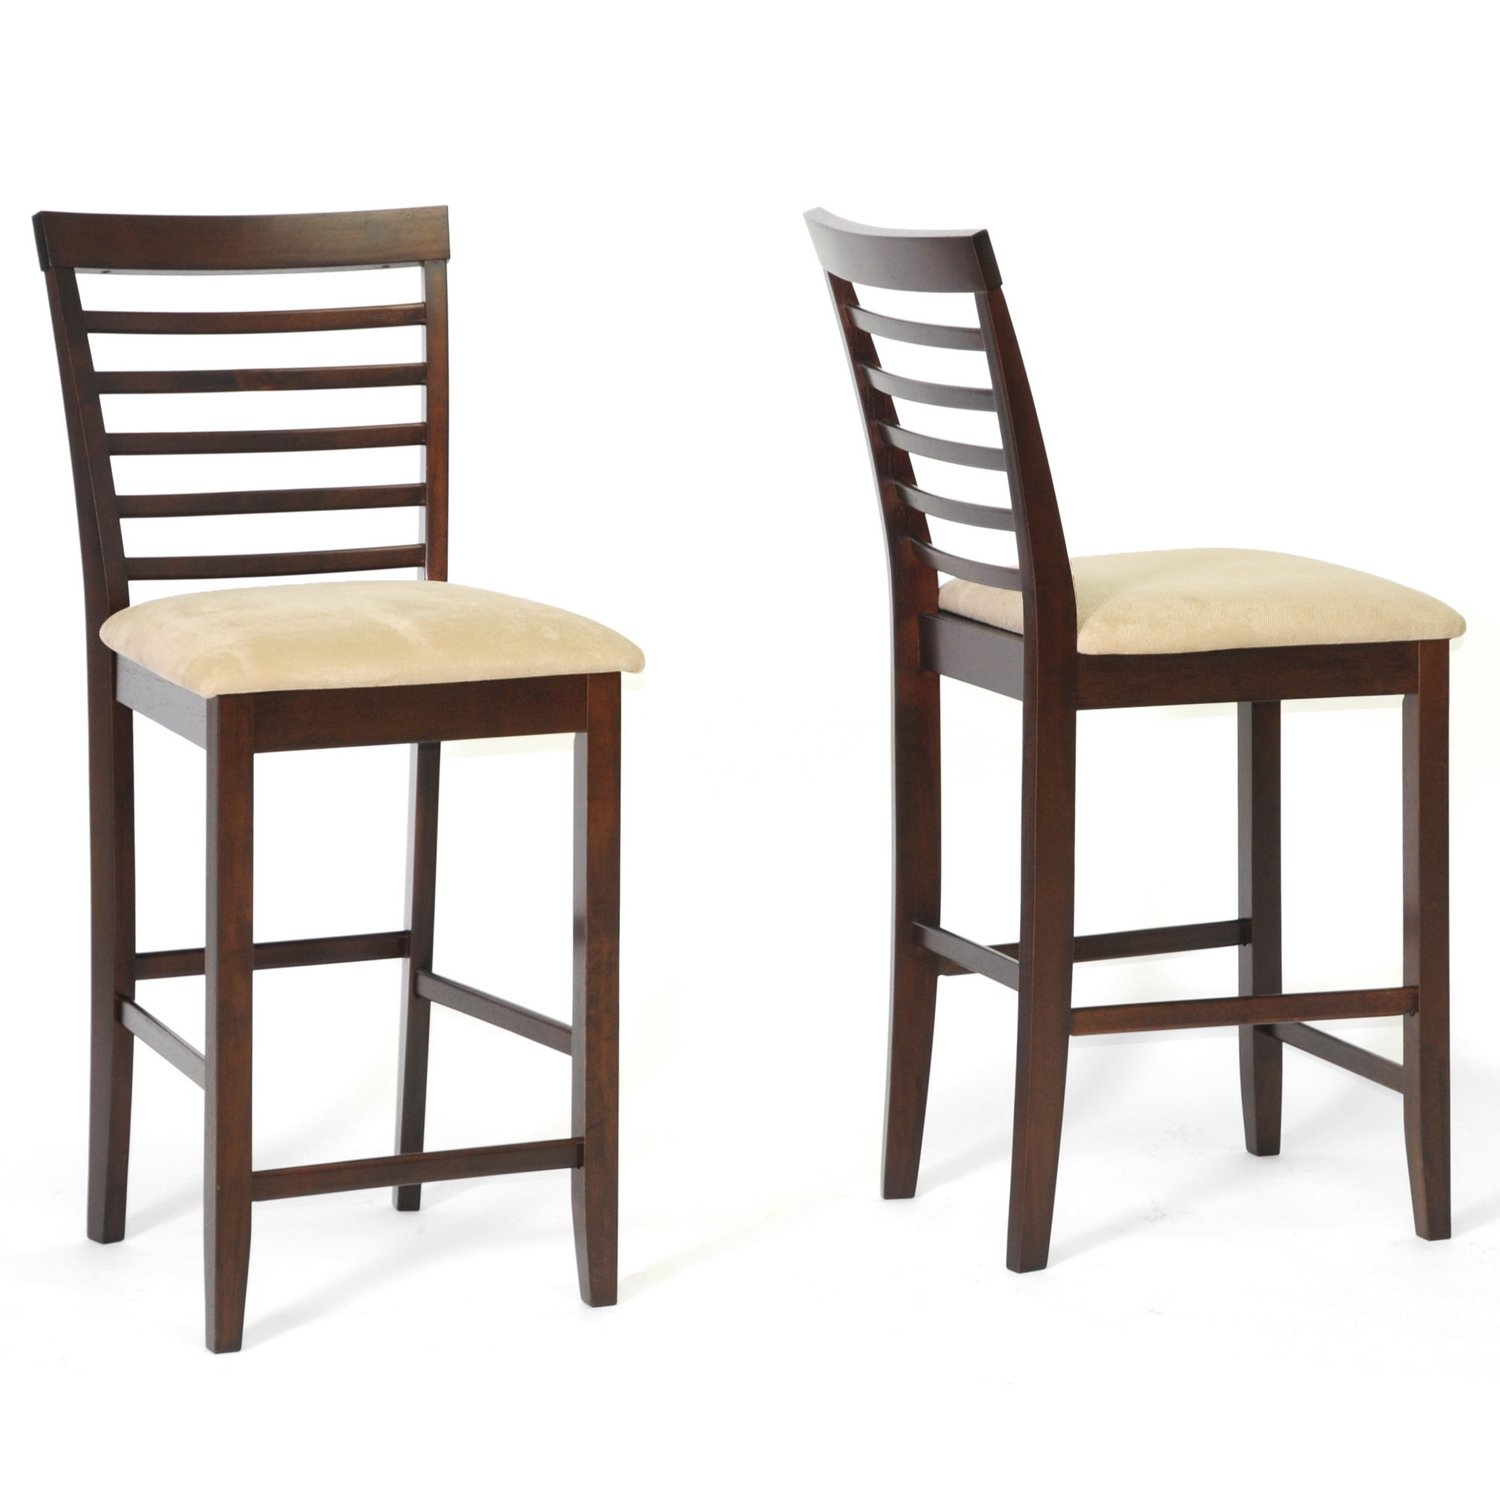 Amazon.com Baxton Studio Kelsey Wood Modern Counter Stool Brown Set of 2 Kitchen u0026 Dining  sc 1 st  Amazon.com & Amazon.com: Baxton Studio Kelsey Wood Modern Counter Stool Brown ... islam-shia.org